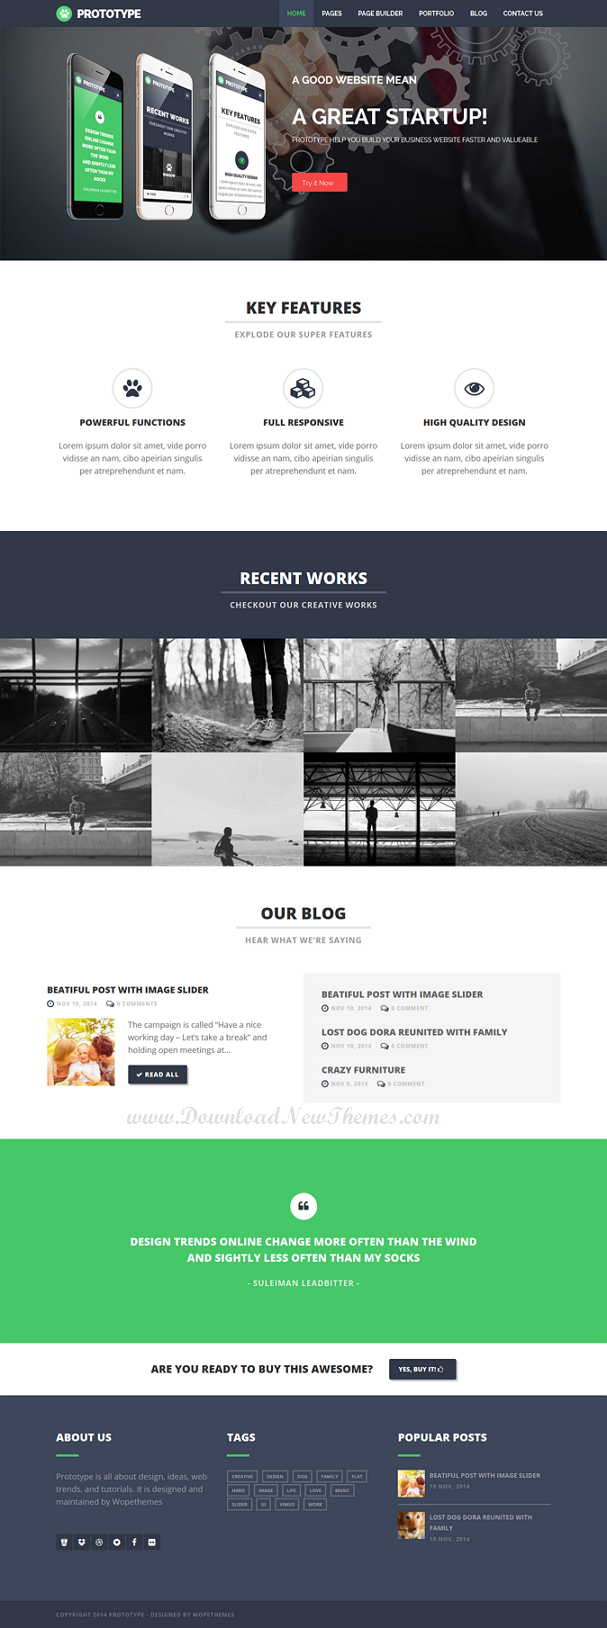 Prototype is Premium Flat Drupal theme which have many powerful features to allow you build webs ...